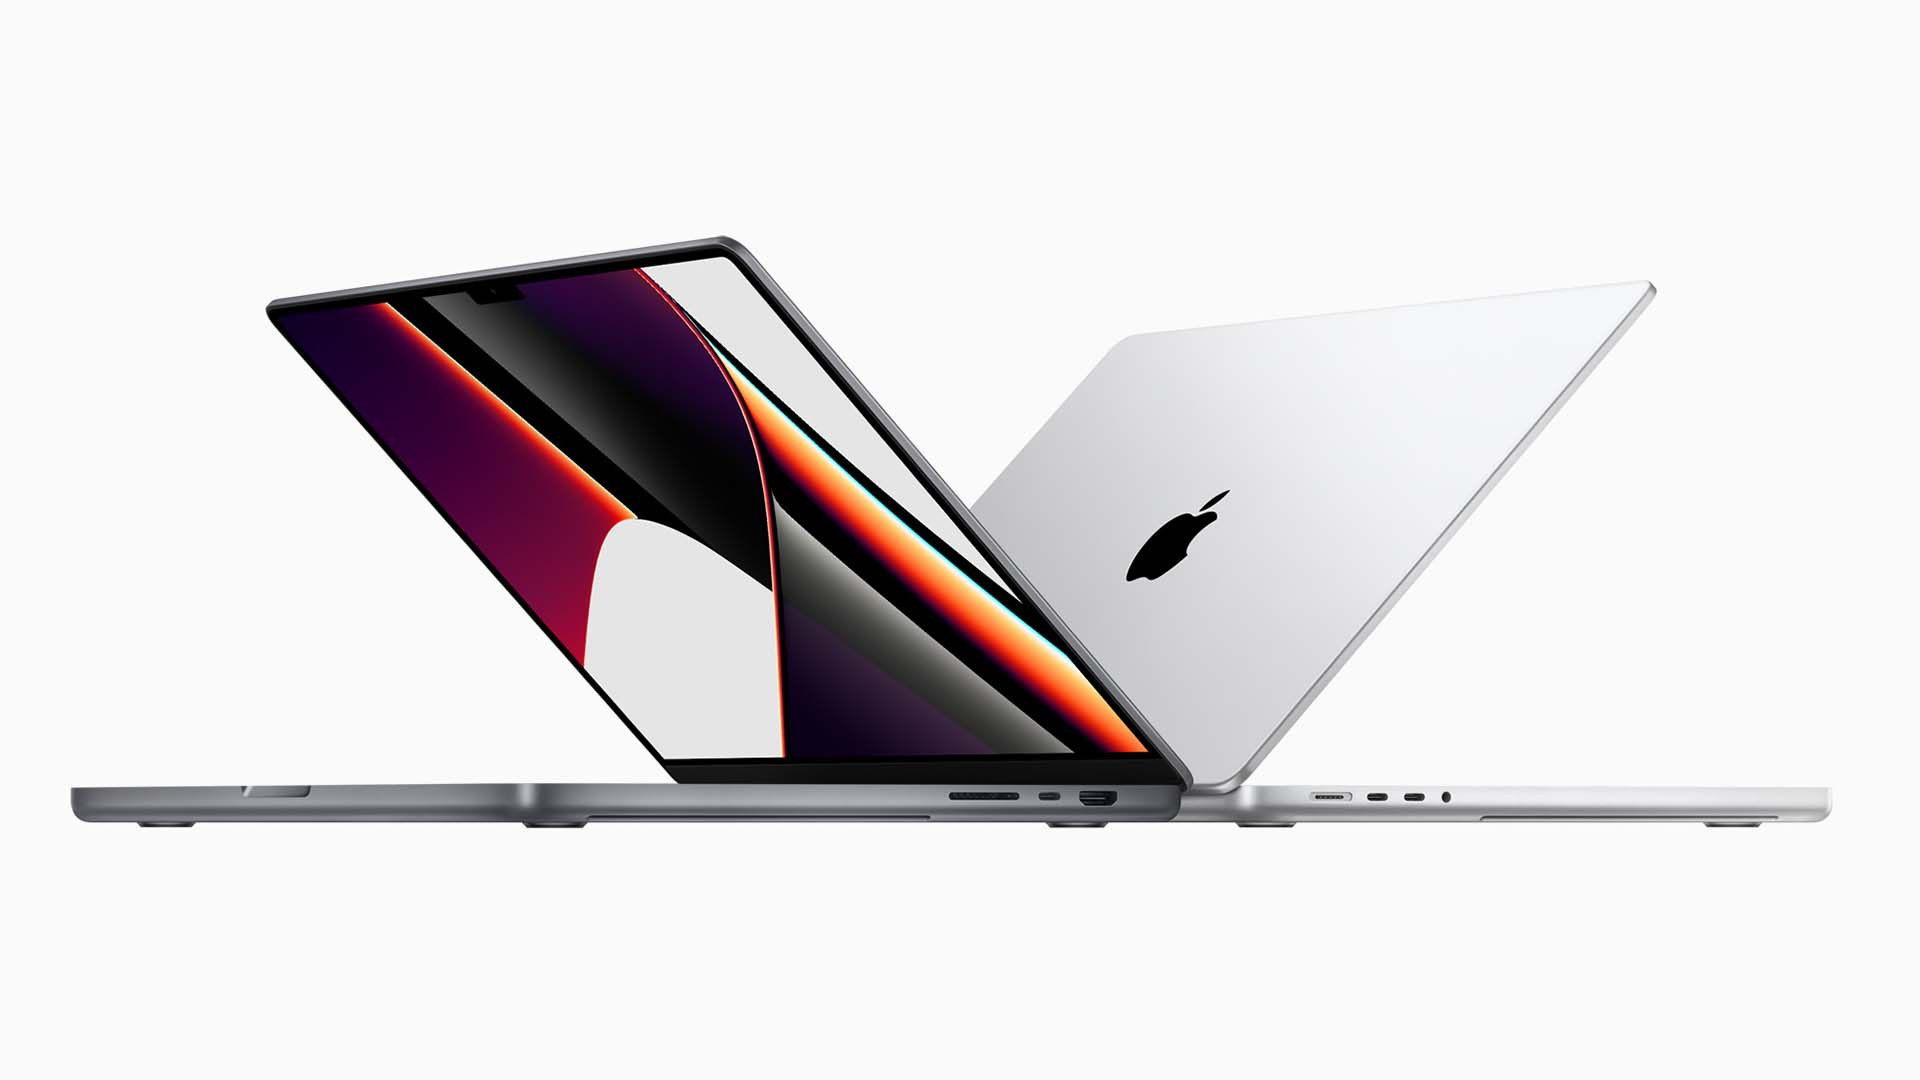 Apple's new M1 Pro and M1 Max powered laptops. Image: Apple.